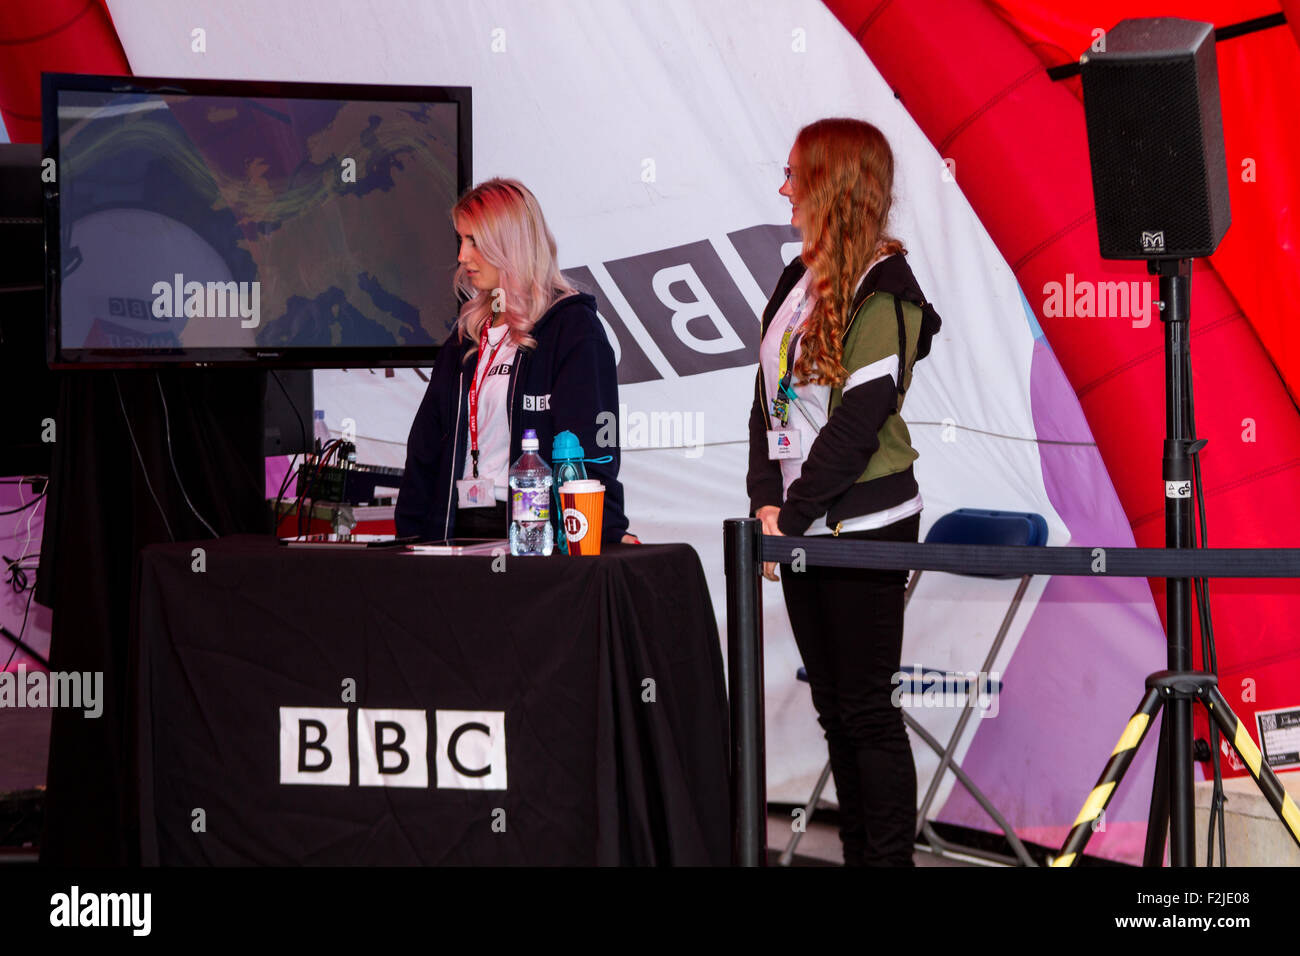 "Dundee, Tayside, Scotland, UK, 20th September 2015. Crowds gather on last day of The BBC ""Make It Digital"" weekend Stock Photo"